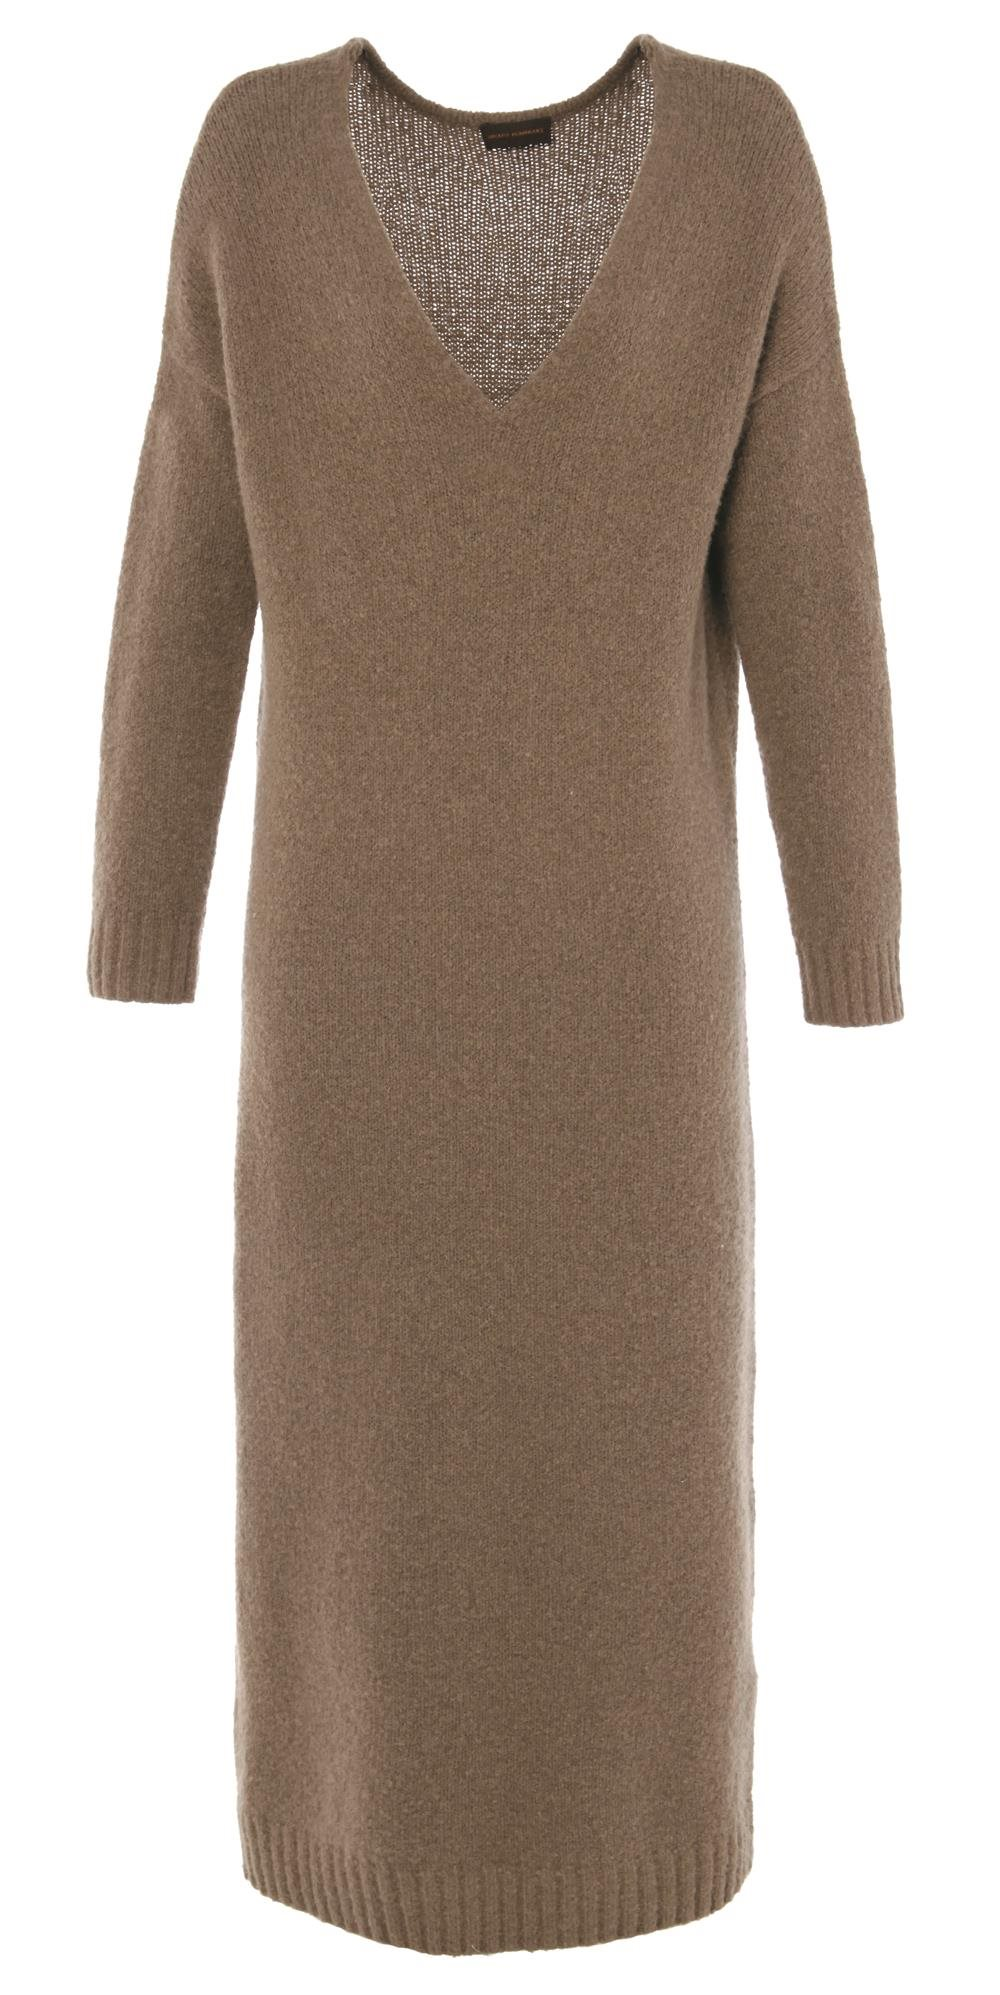 ADOLFO DOMINGUEZ Woman FW15 2.88.03. Vestido